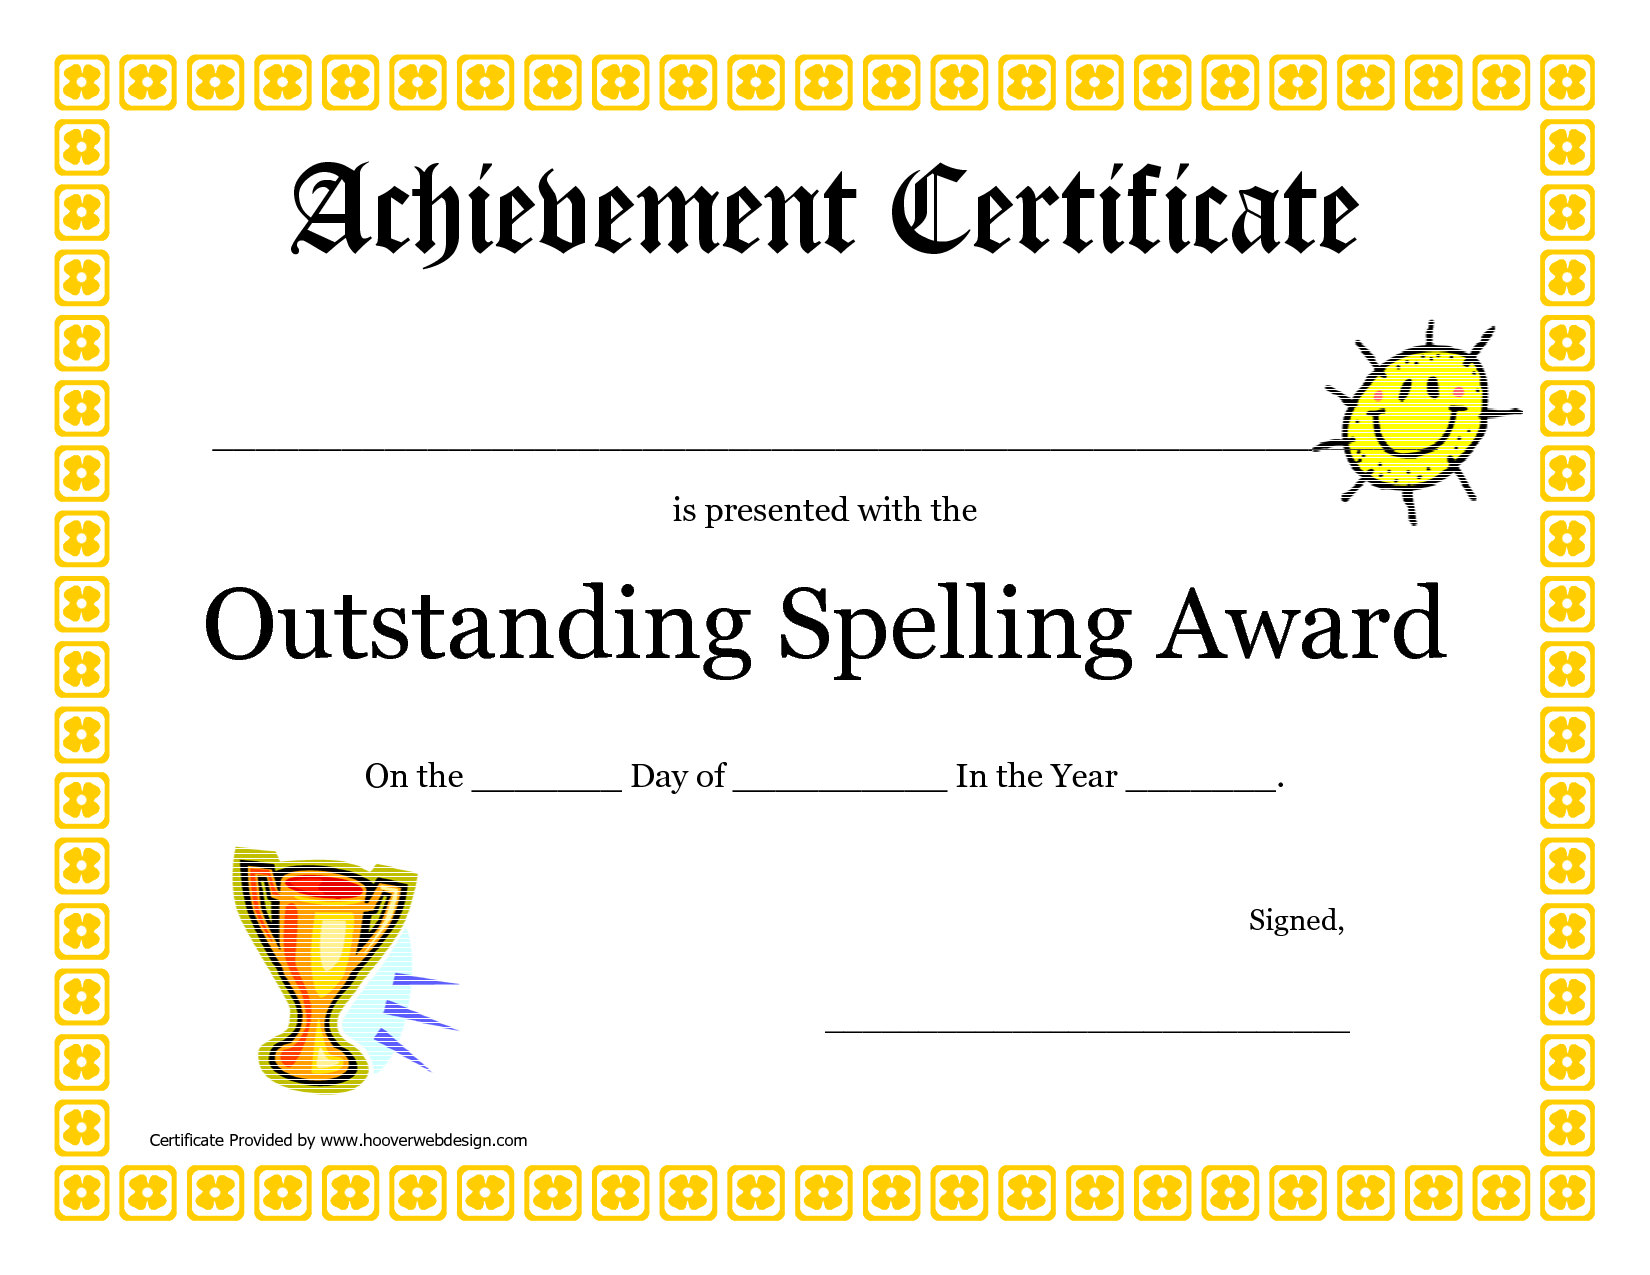 Outstanding Spelling Award Printable Certificate Picture